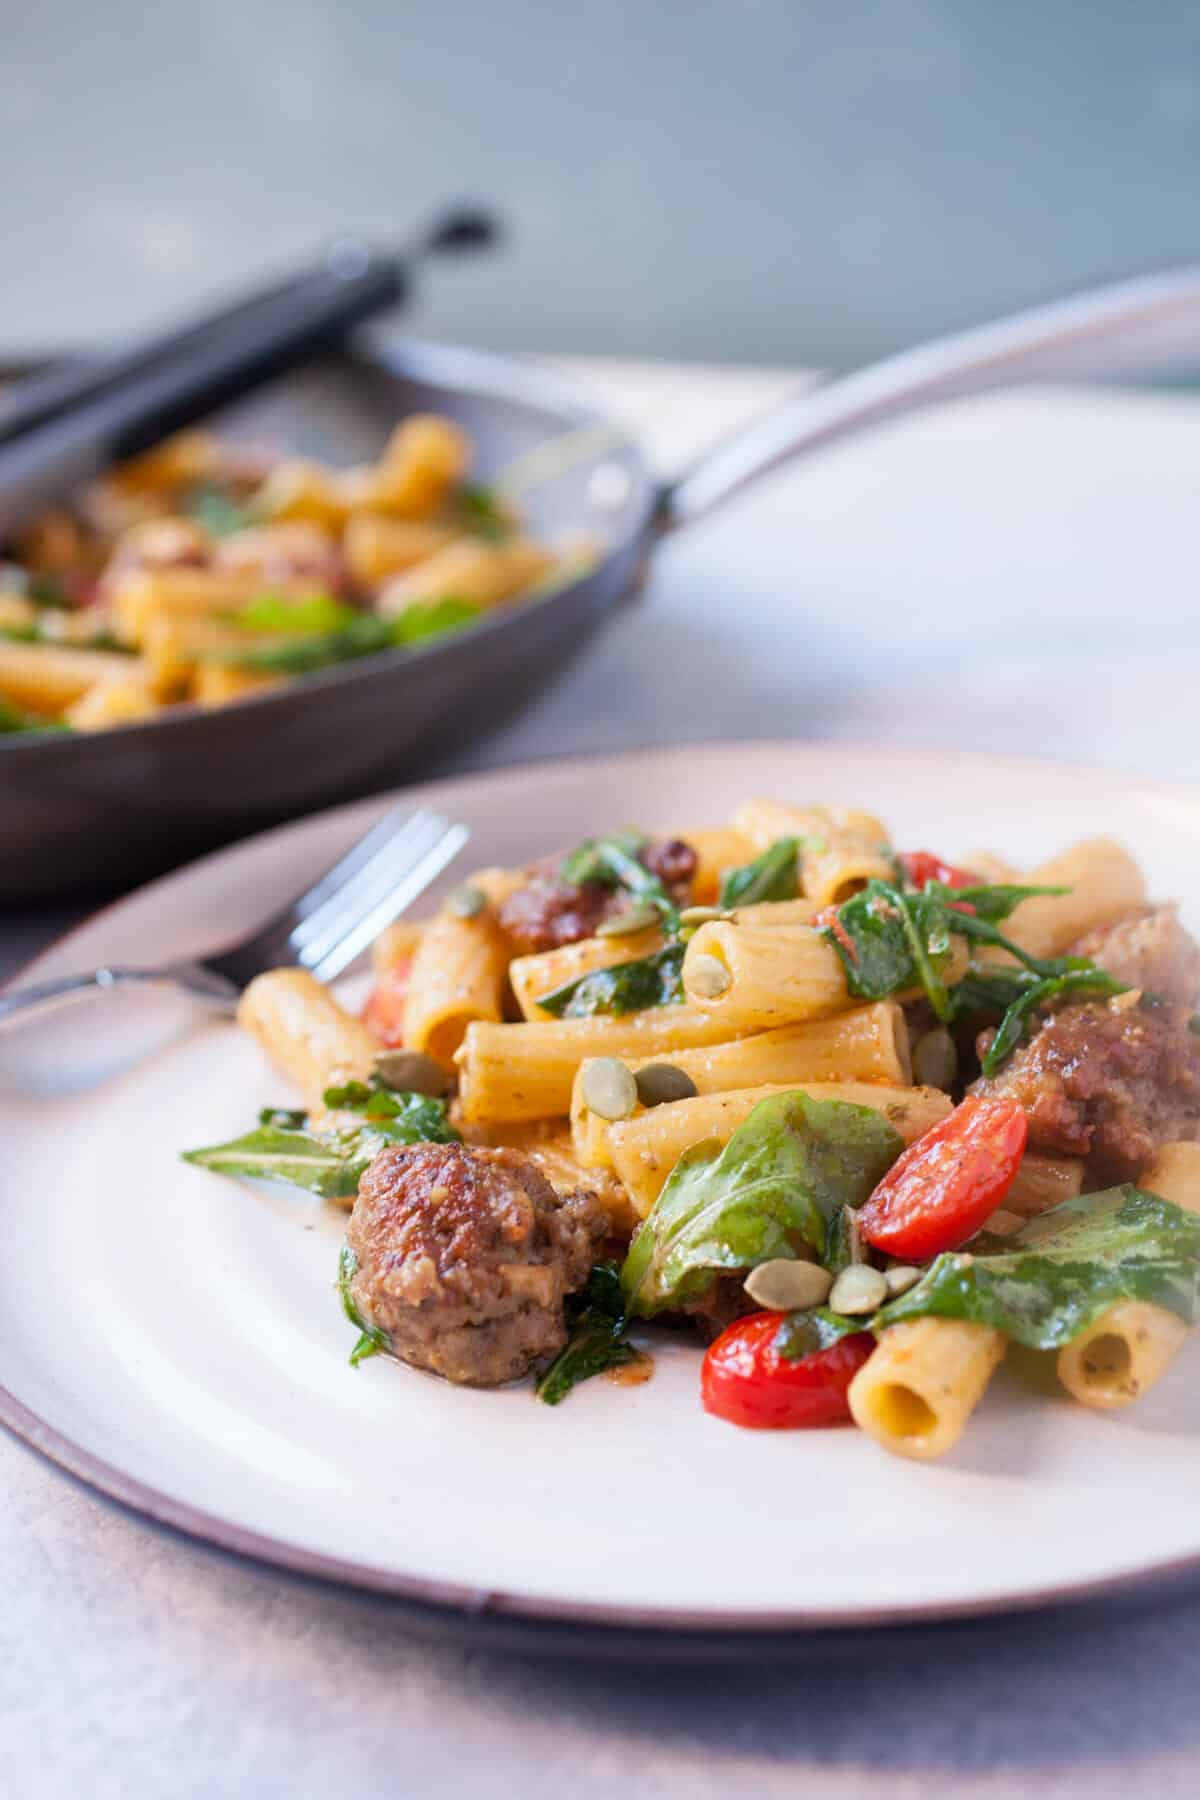 Easy Pesto Pasta with Sausage: This pasta dish is perfect comfort food. Simple flavors with sweet Italian sausage, arugula, and grape tomatoes, tossed with pasta and pesto. One of my new favorites! | macheesmo.com